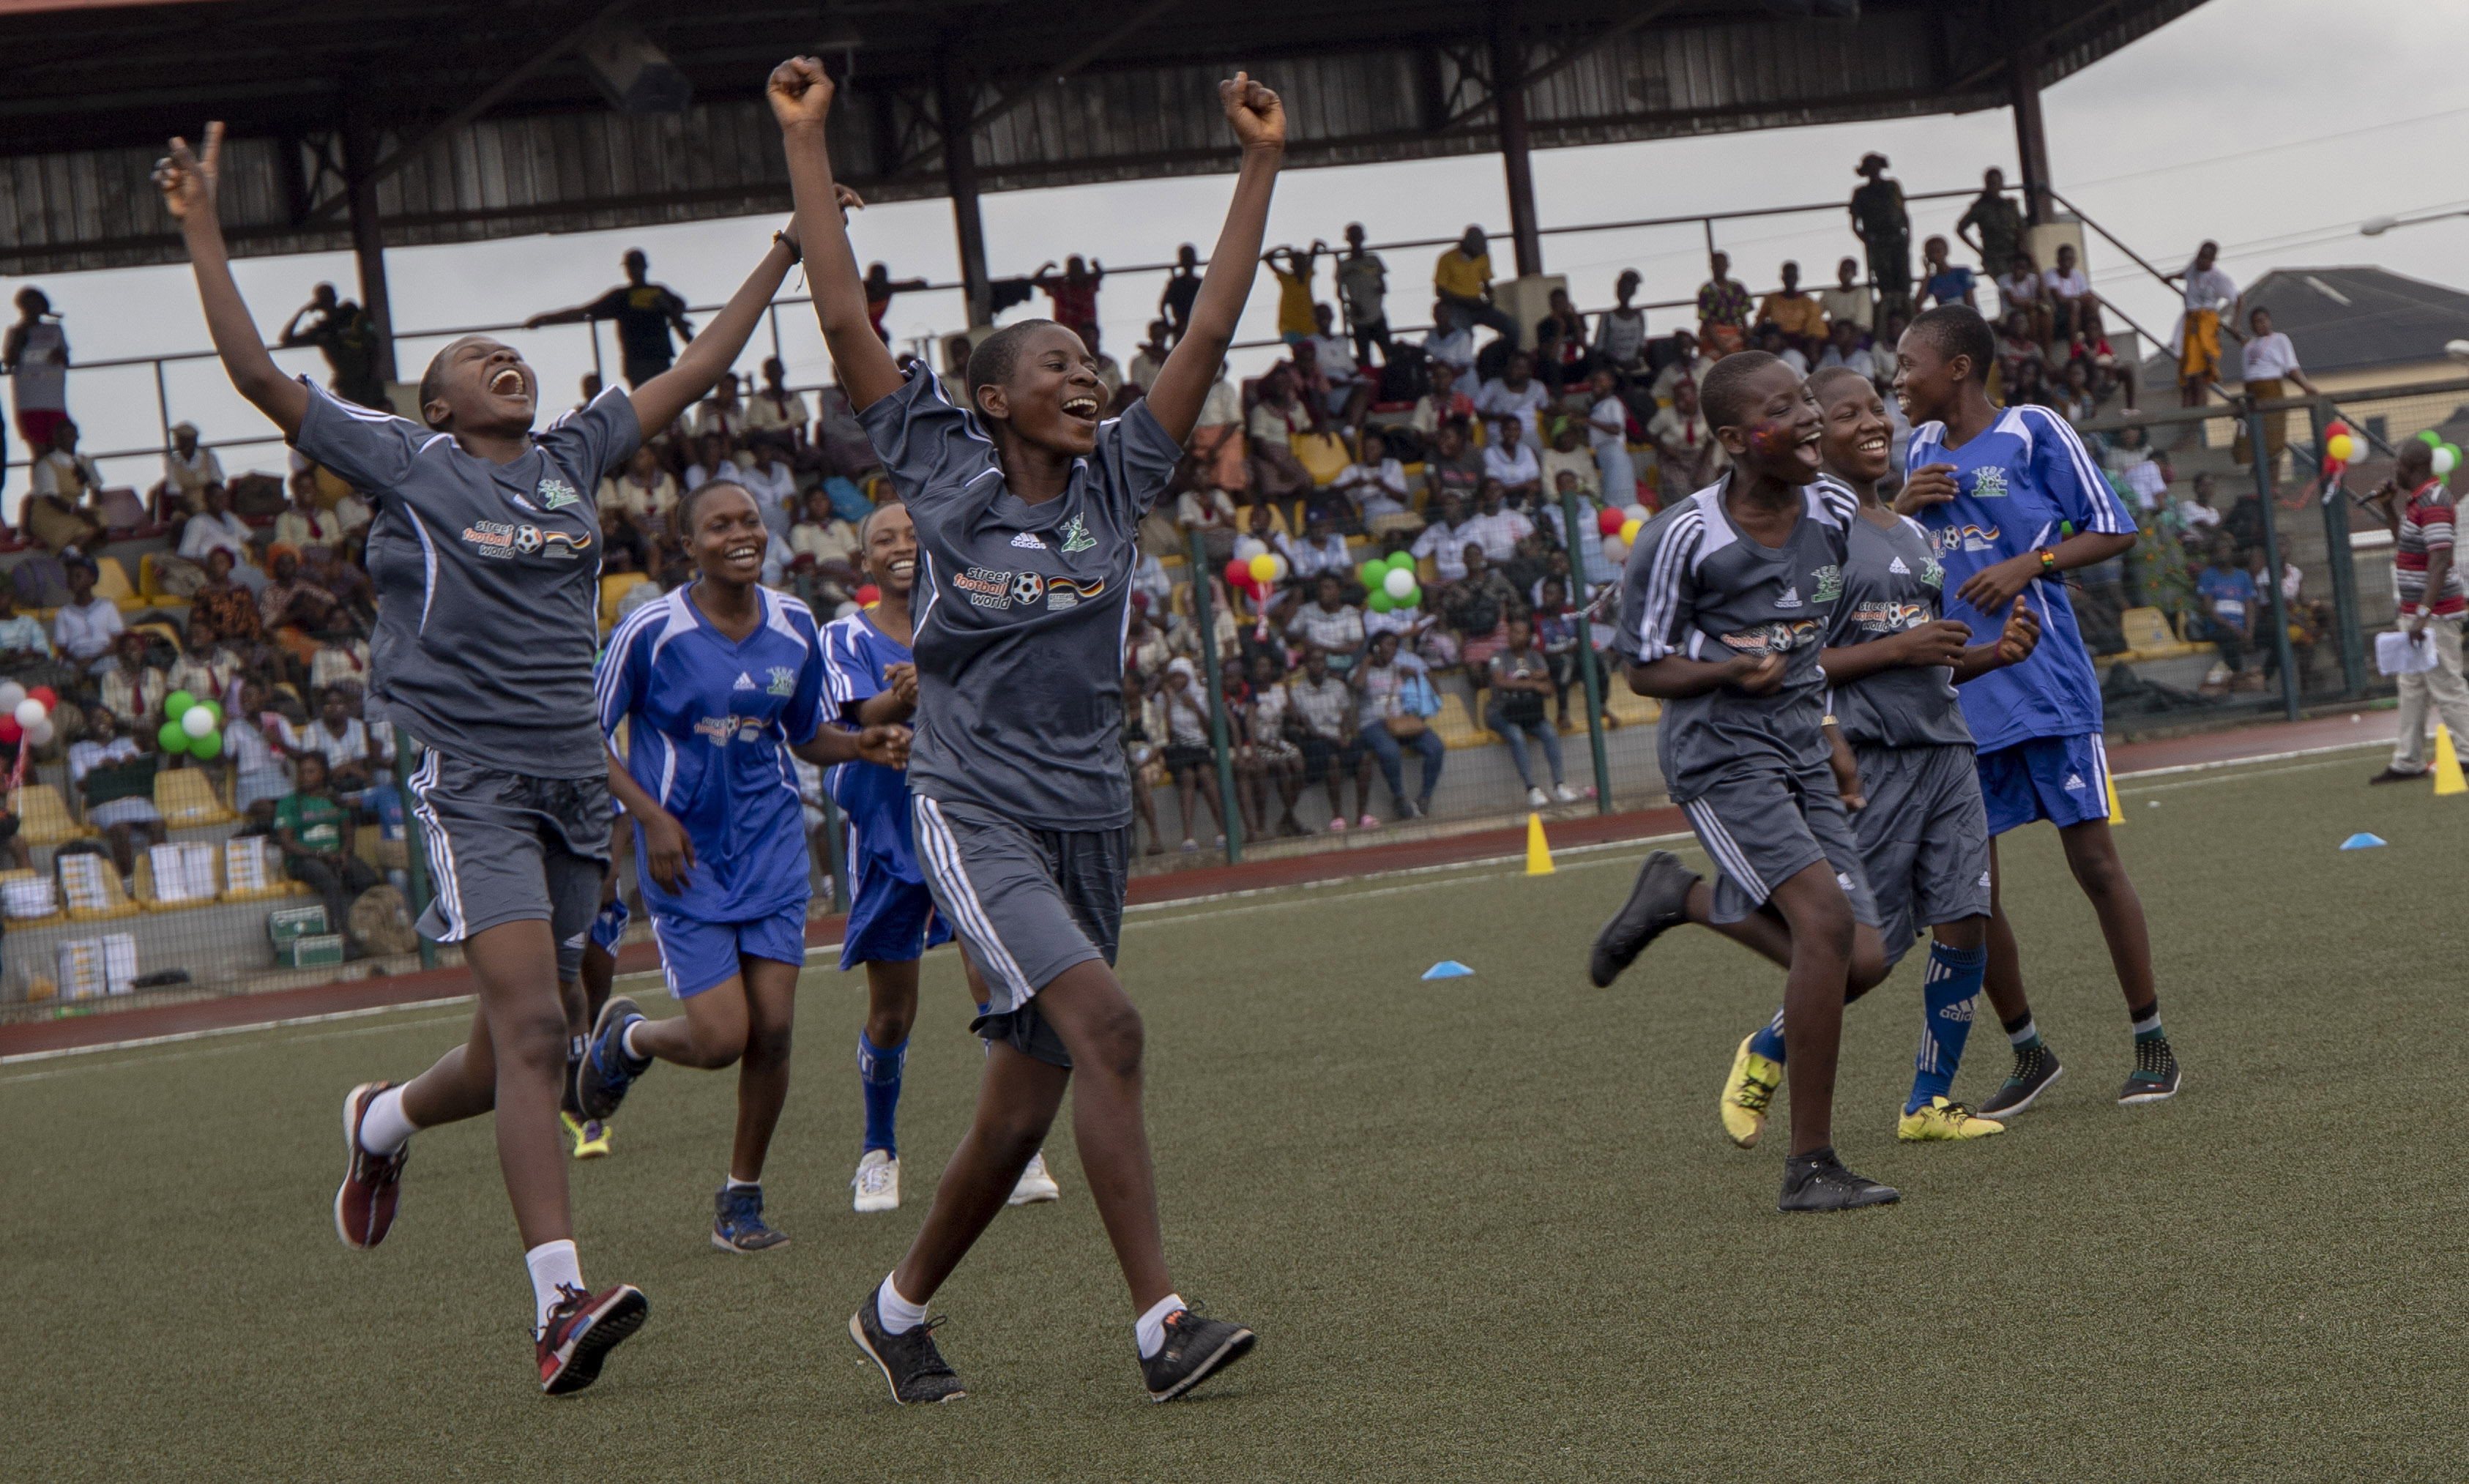 Changing the game for girls in Nigeria | streetfootballworld